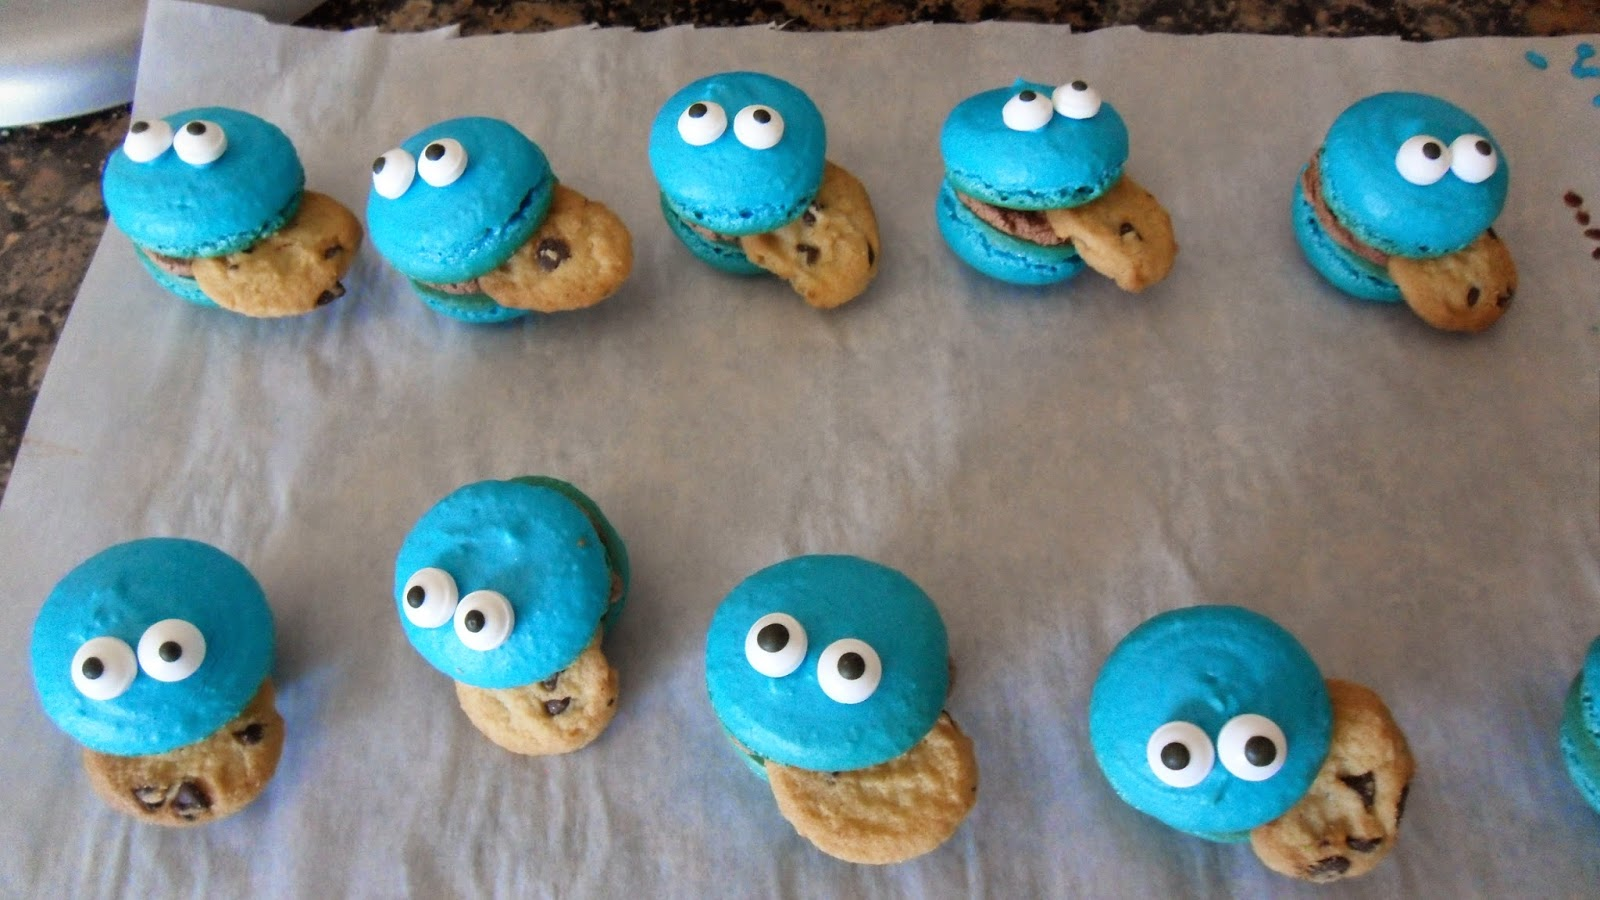 Ally in Cali: Cookie monster macarons